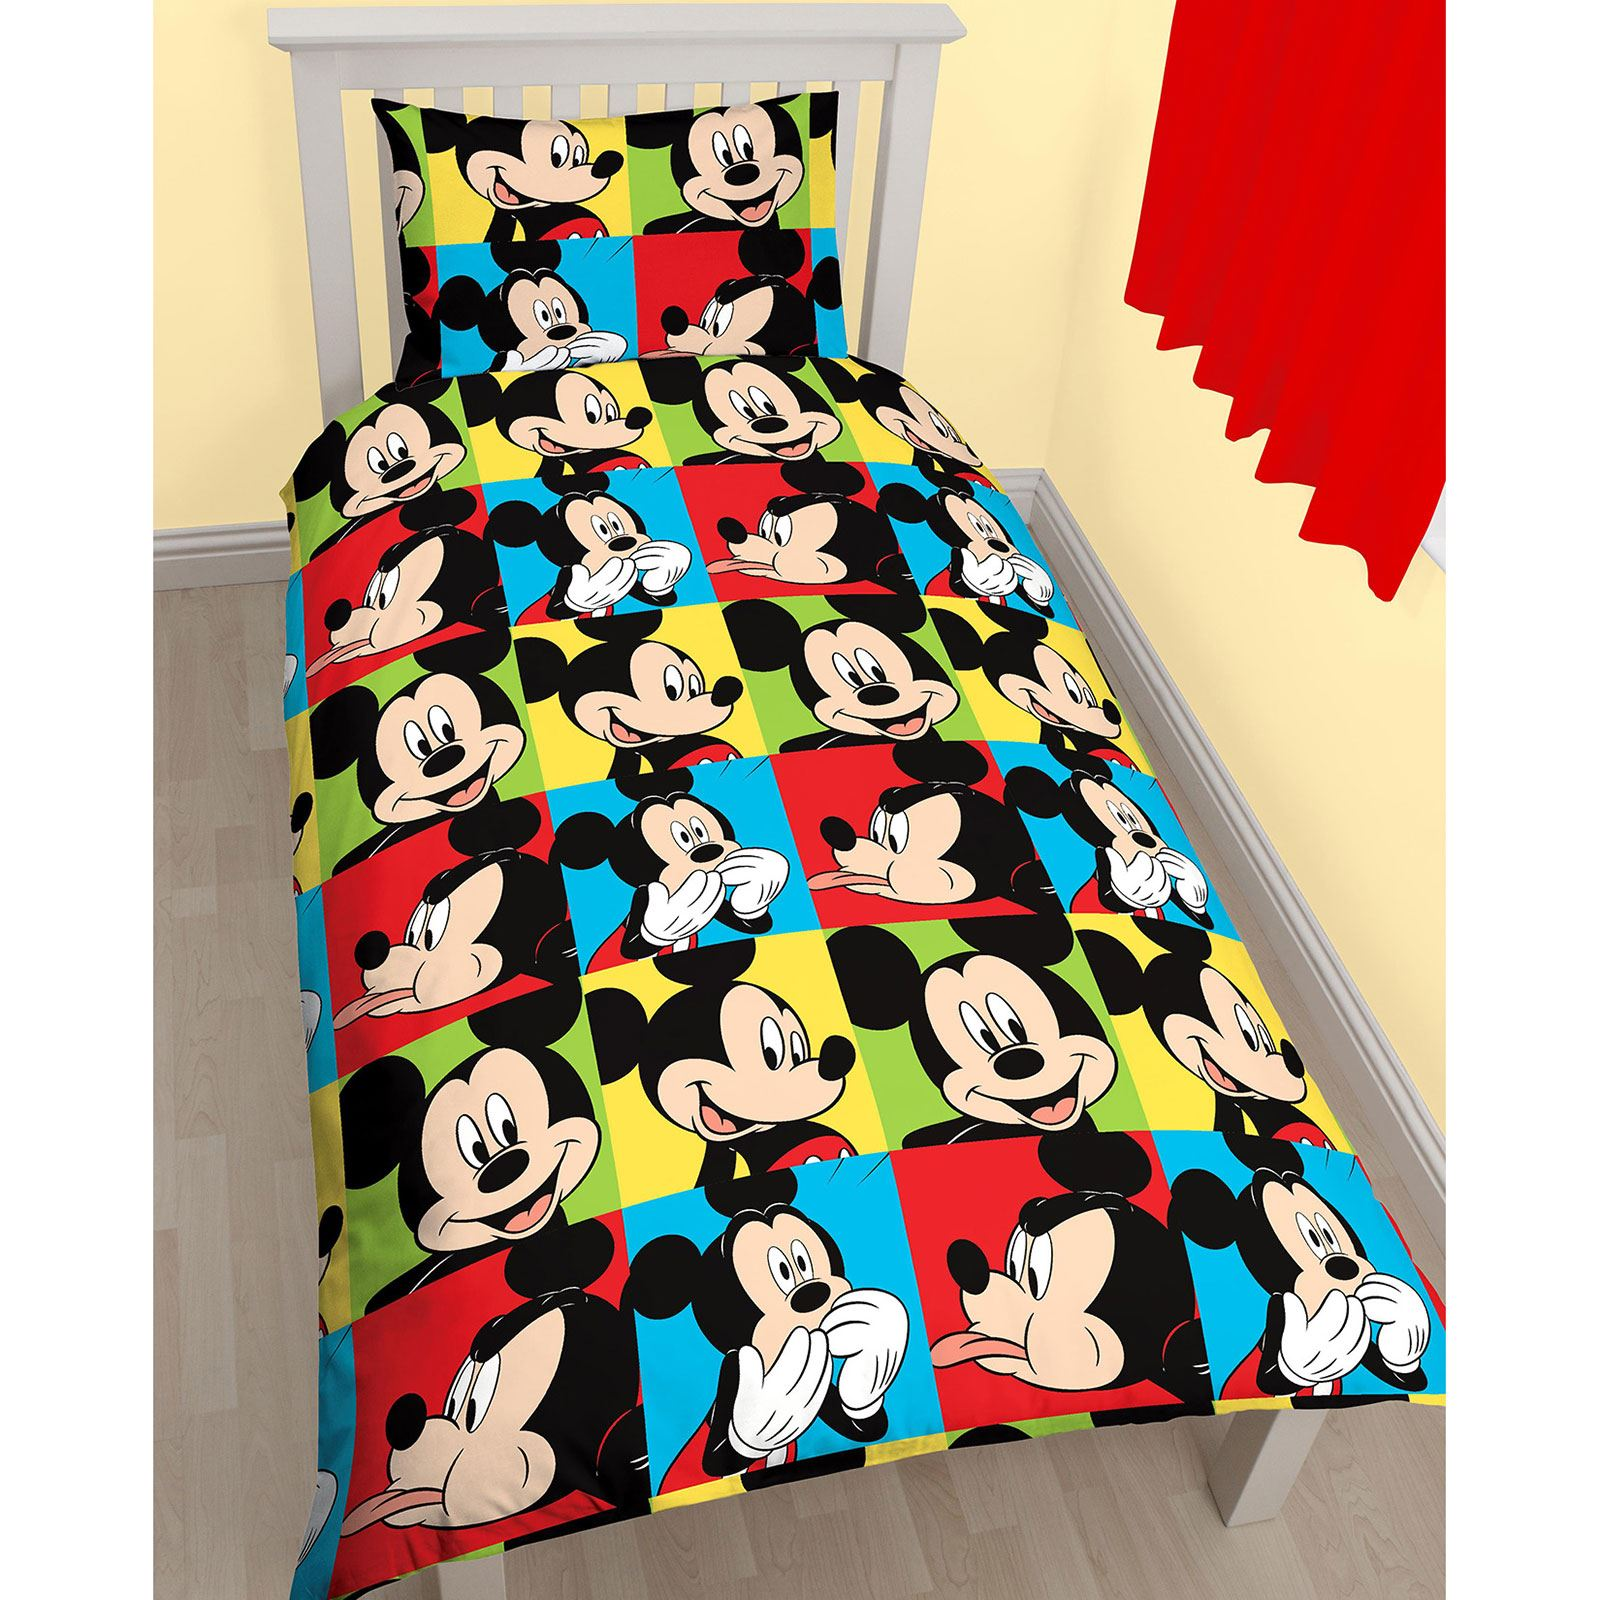 disney mickey mouse wende hell einzel bettw sche offizieller kinder bettw sche ebay. Black Bedroom Furniture Sets. Home Design Ideas